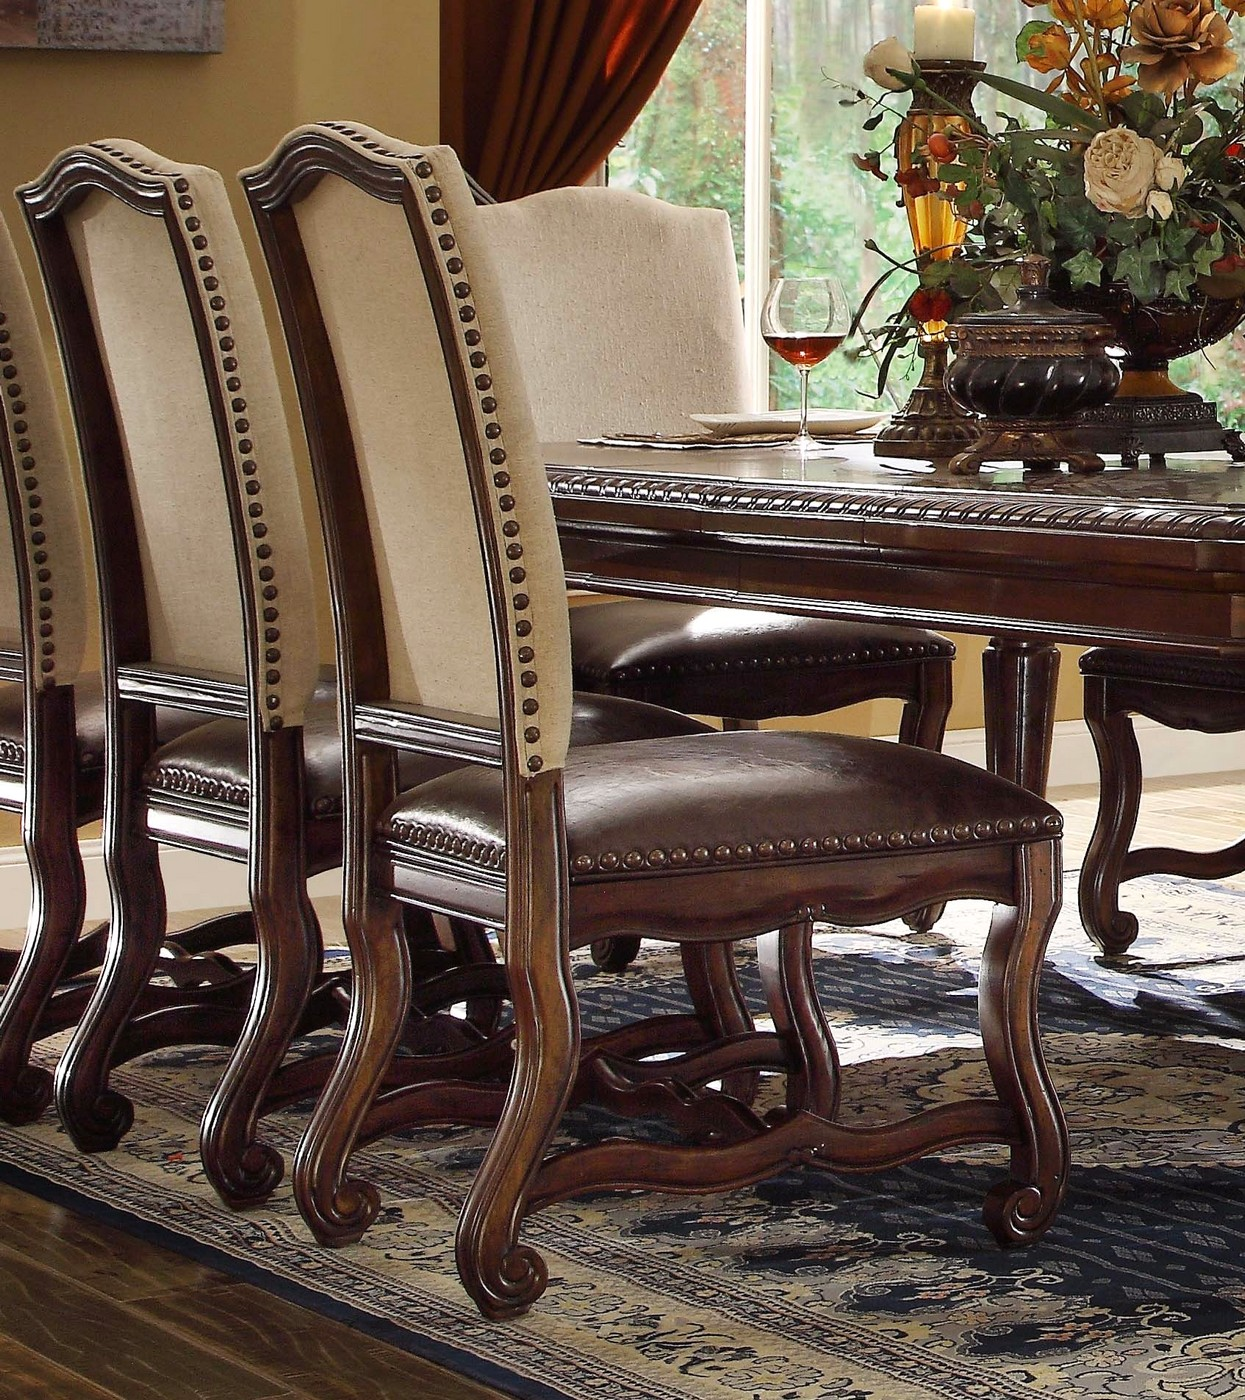 Set Of 2, Coruna Upholstered Wood Side Chairs W/ Nailhead Trim